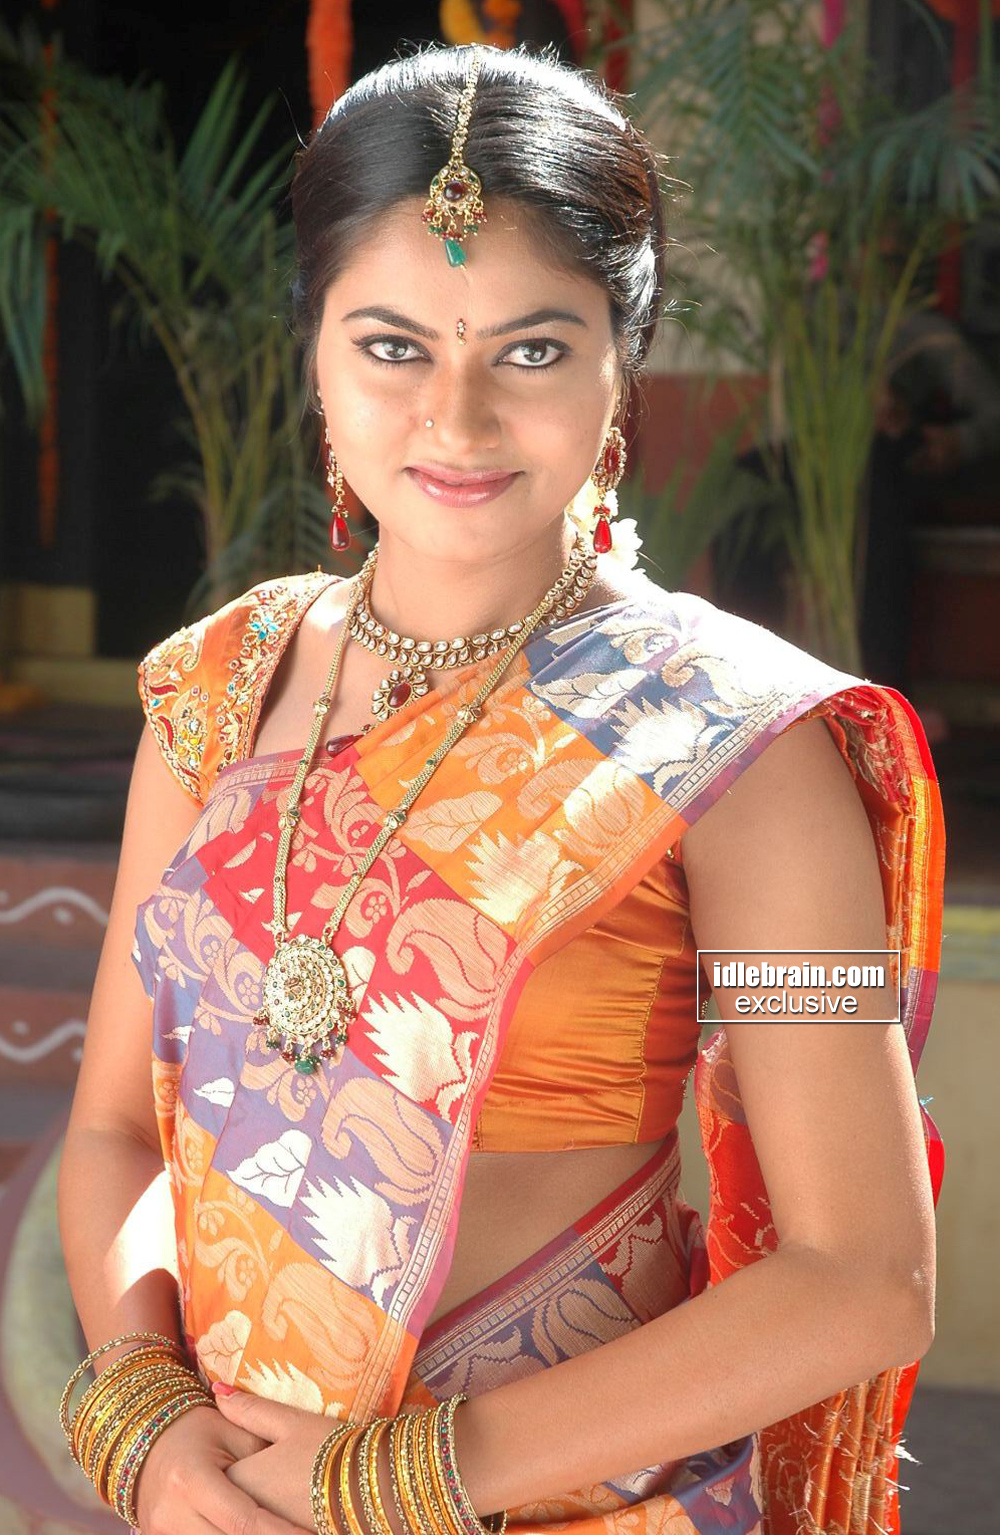 Telugu Cinema Actress Suhasini Hot Pics In Saree